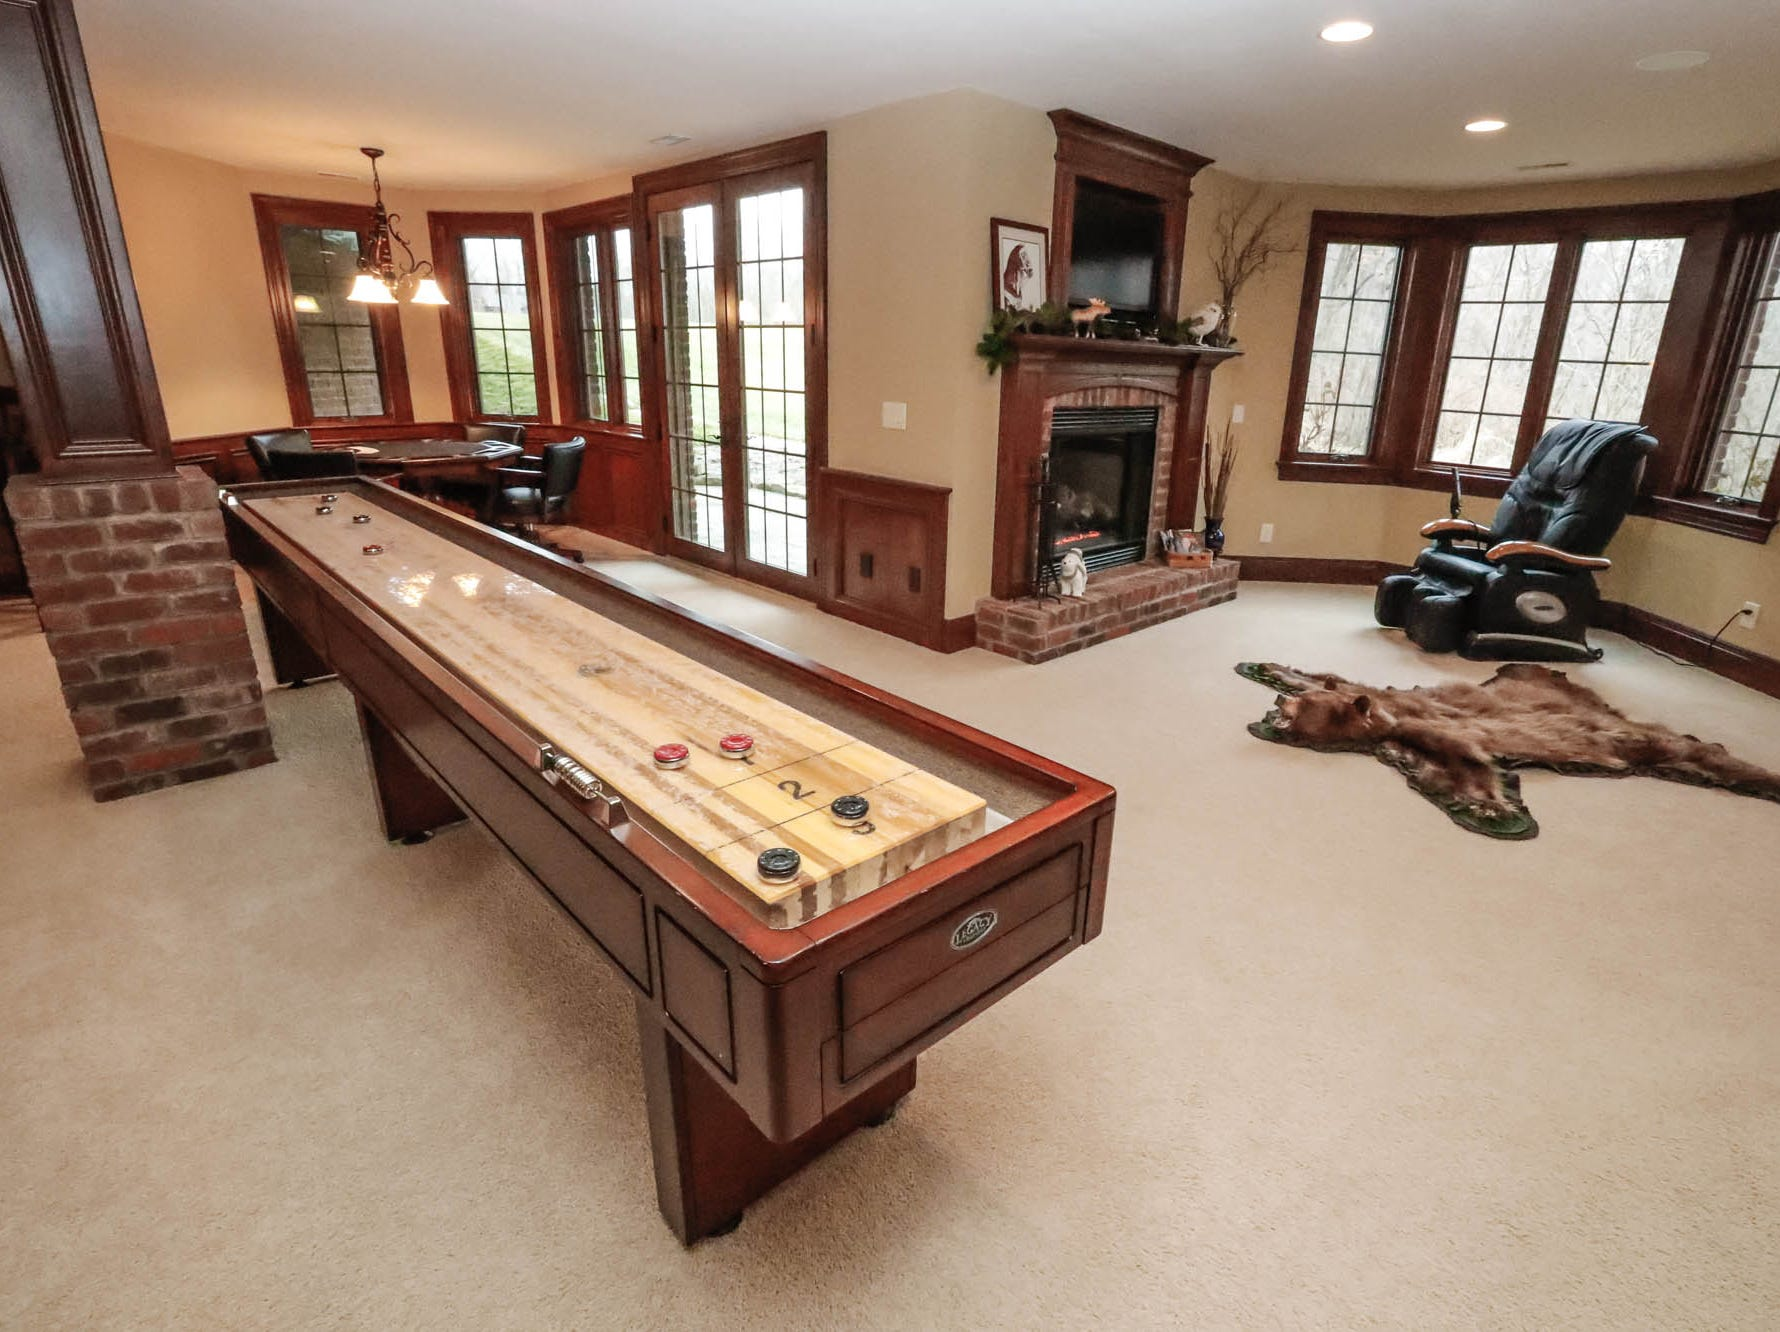 The basement of a traditional $2m home up for sale in Bargersville Ind., features a shuffleboard table, aquarium, bar, fireplace and home theatre room on Wednesday, Jan. 9, 2019. The home sits on 8.1 acres.